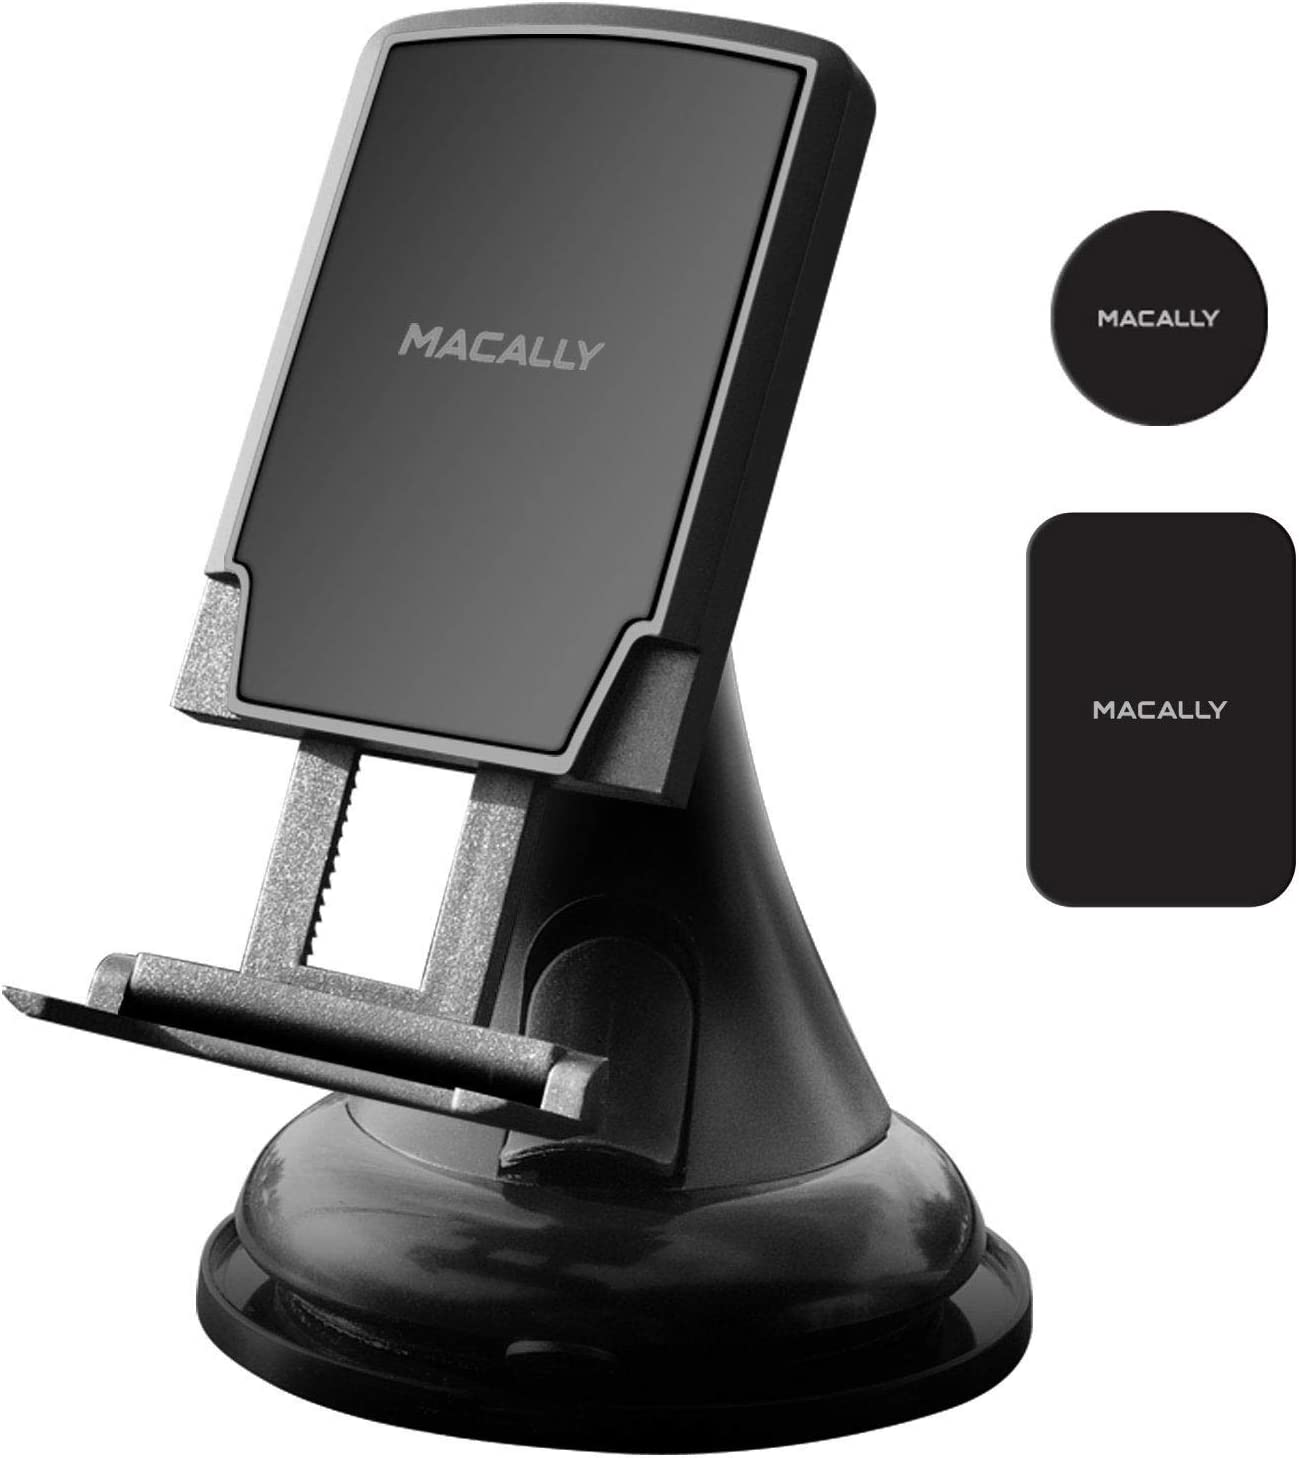 Macally Universal Dashboard/Windshield Magnetic Car Mount Phone Holder with Super Strong Magnet & Support Feet for iPhone X 8 8 Plus 7 7+ 6s 6 SE Samsung Galaxy S9 S9+ S8 S7 S6 Note etc. (MGRIPMAG)